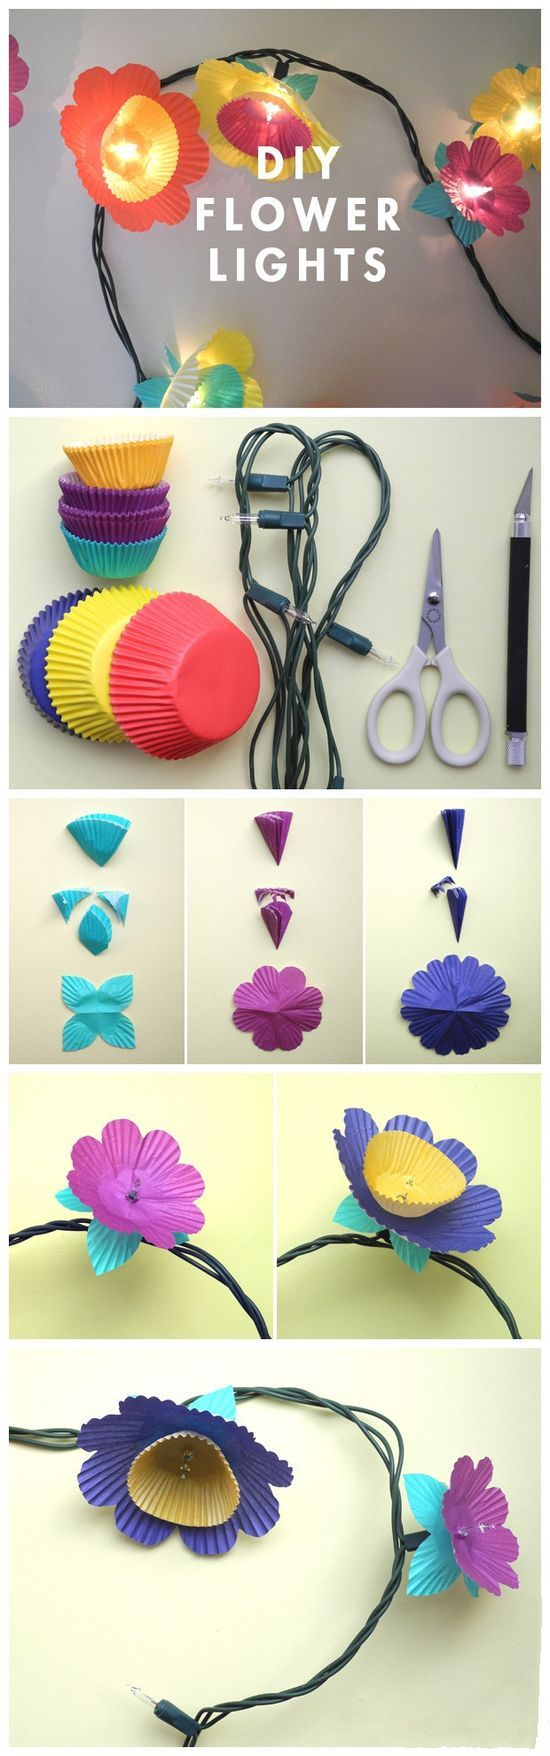 Surprise Diy Cupcake Liner Flower Lights ~ Cute